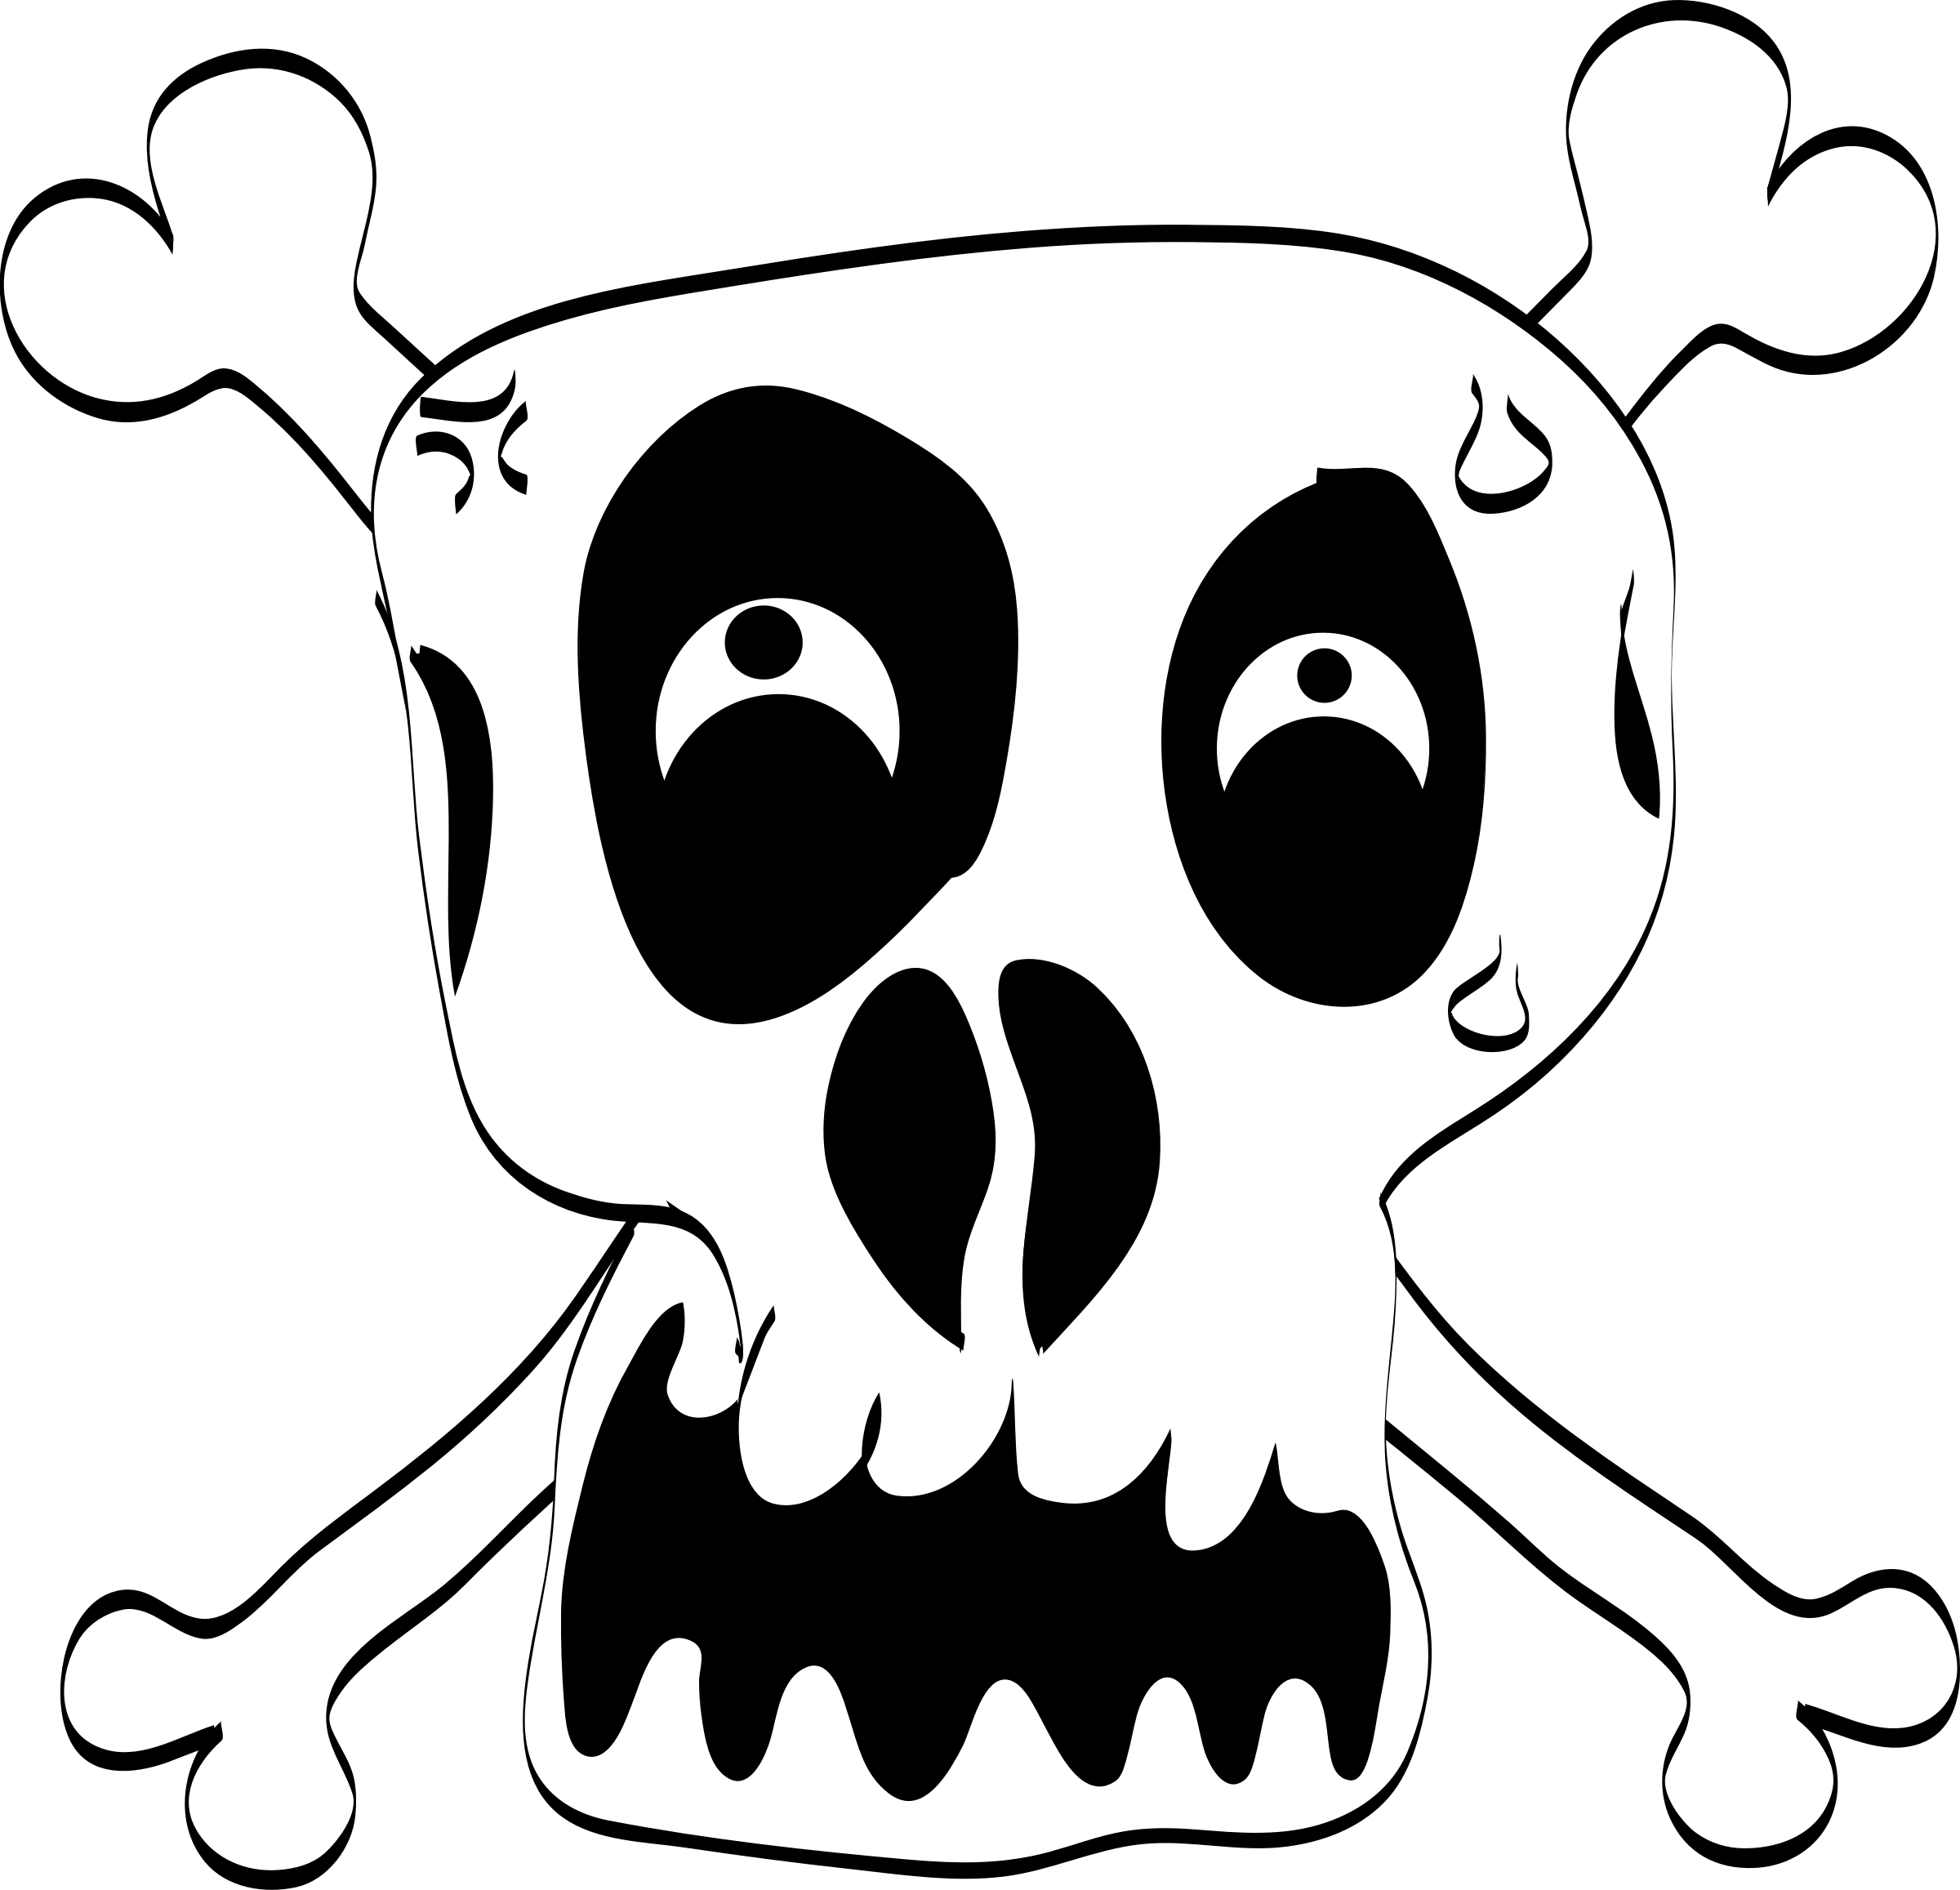 Book clipart transparent funny picture royalty free library Clipart - Freehand Funny Skull picture royalty free library